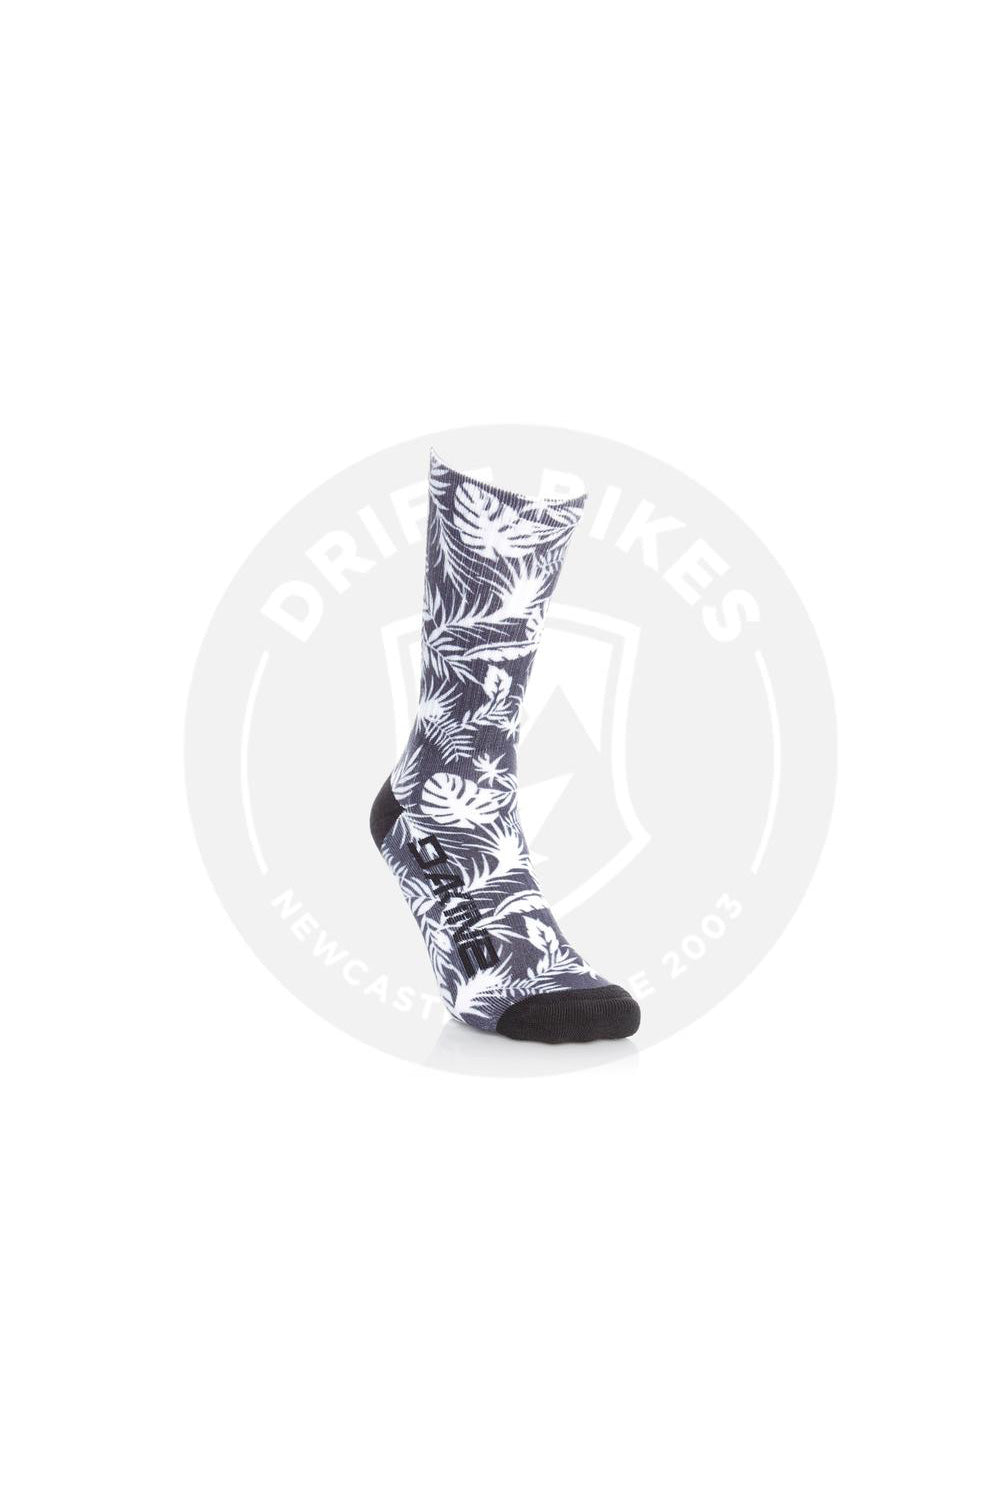 Dakine Booker Sock Black / White Palm